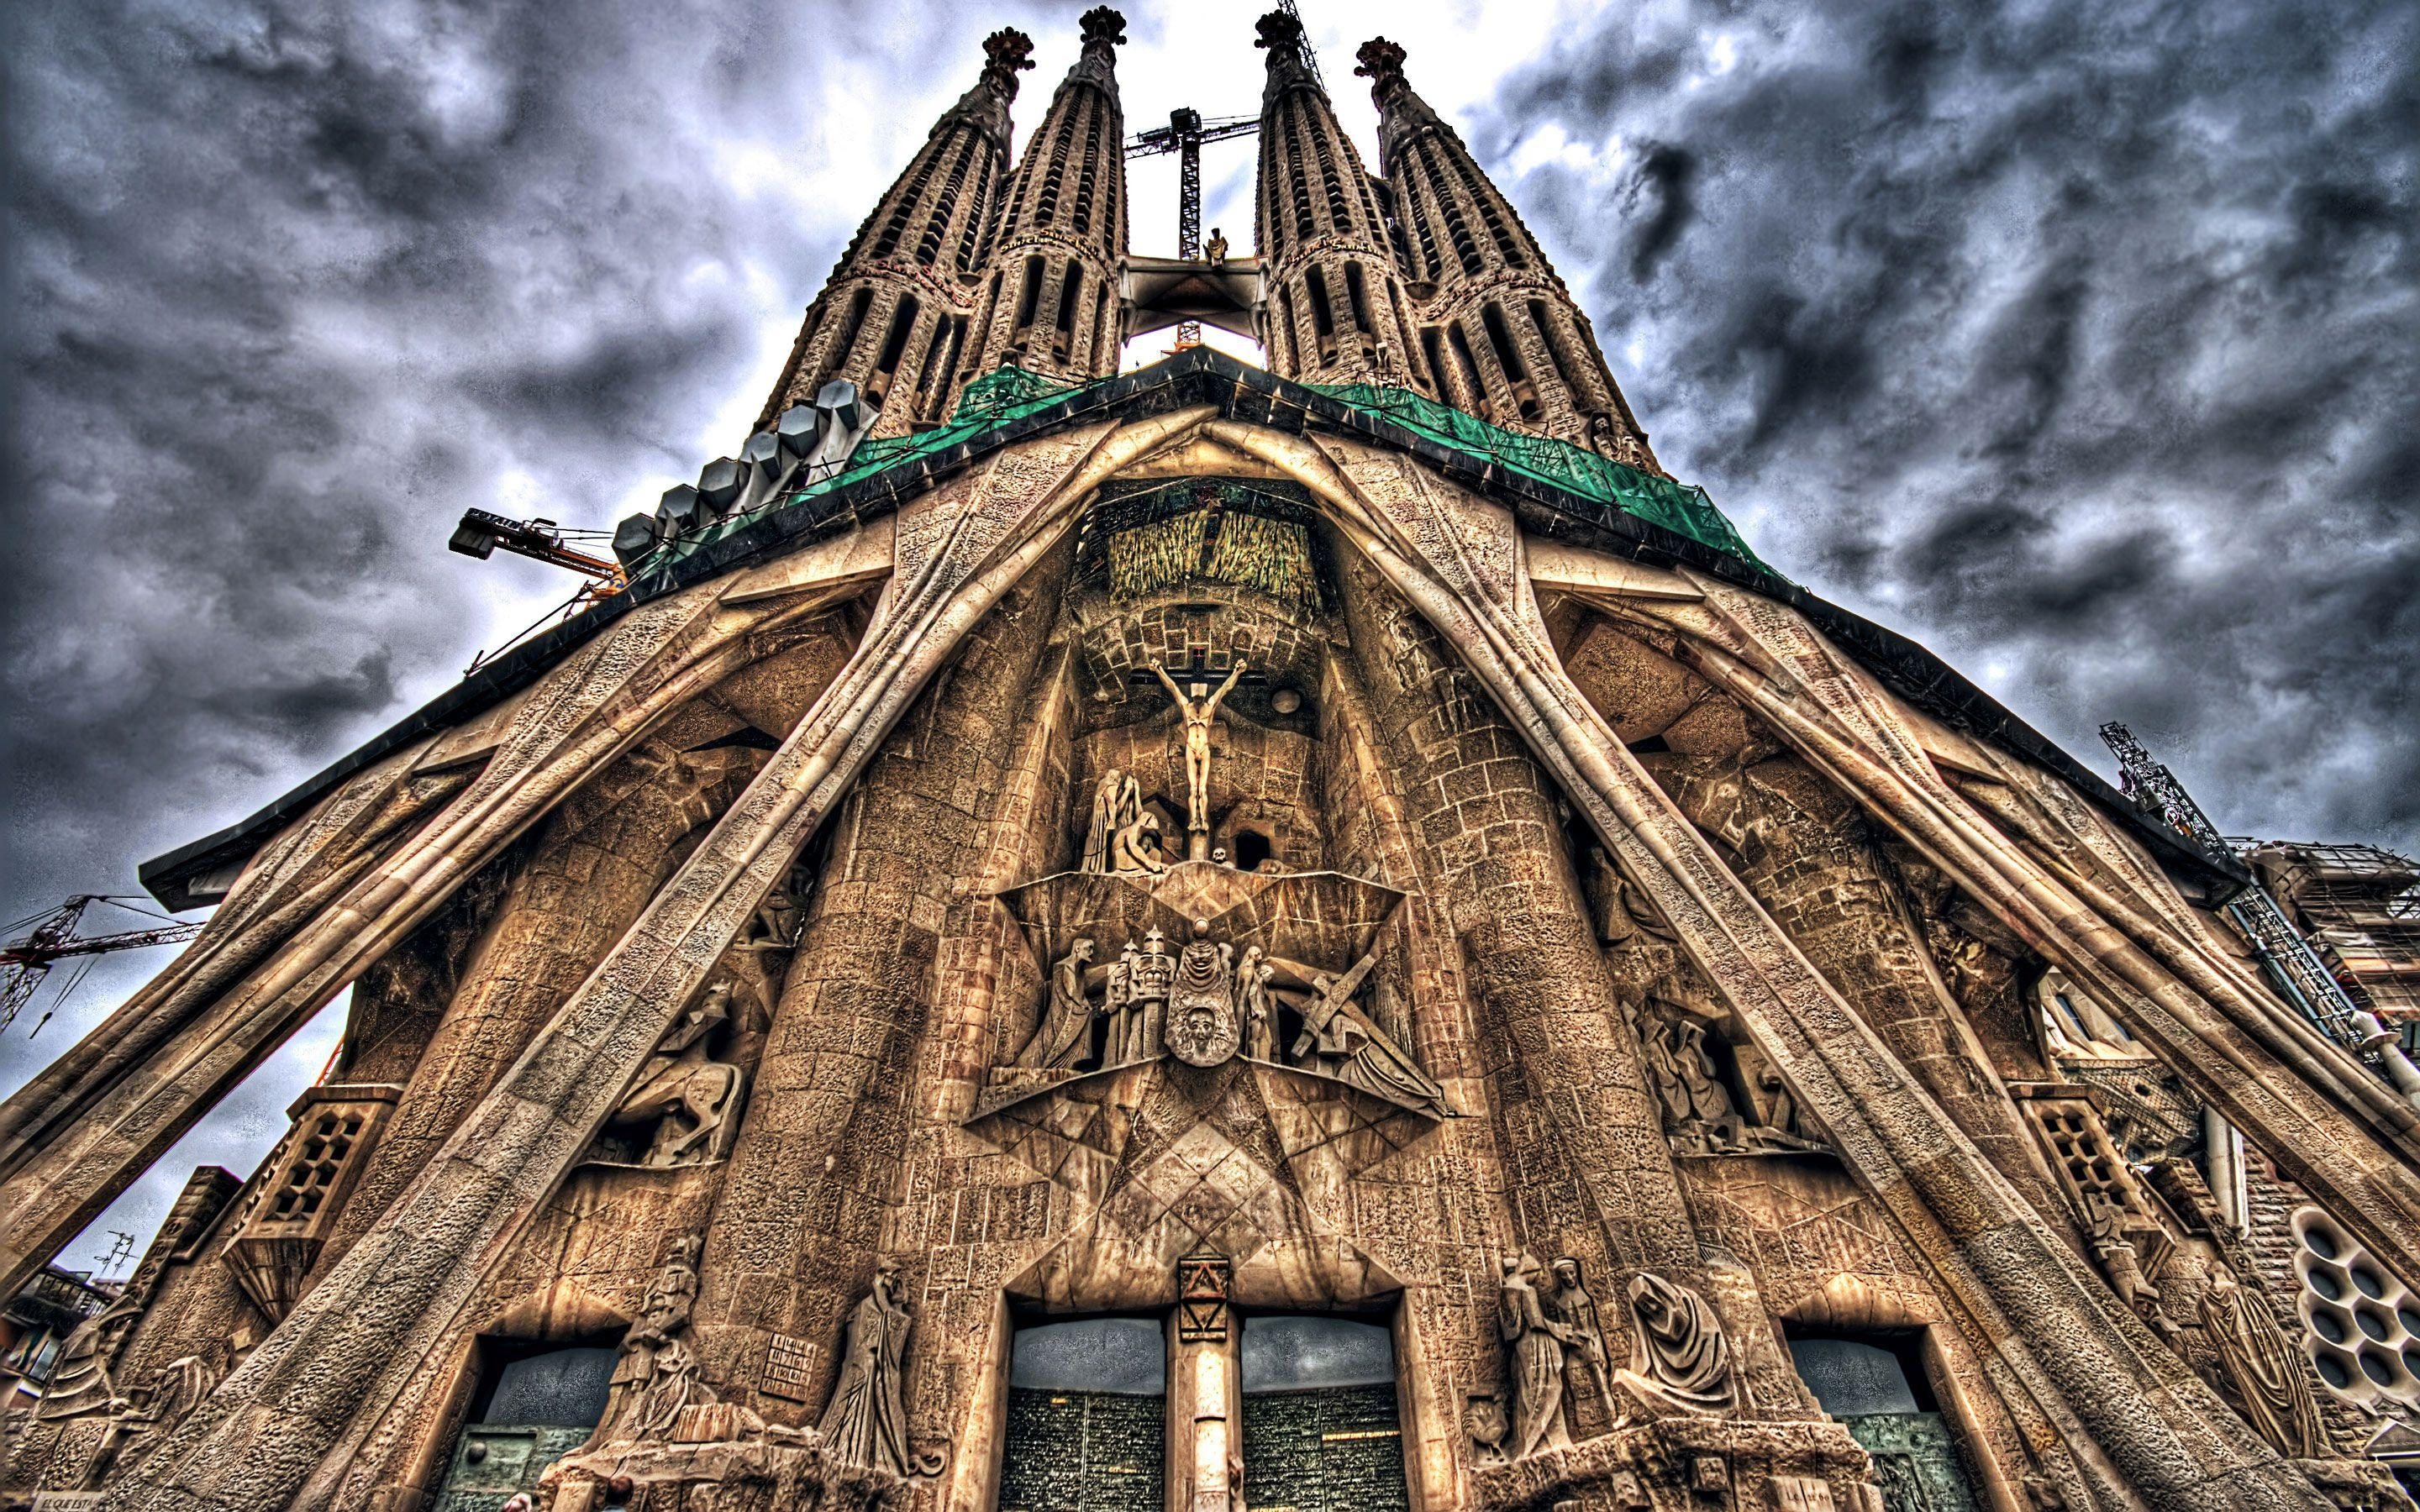 Awesome Barcelona Wallpaper by Jackie Vick on FL | City HDQ | 1.55 MB